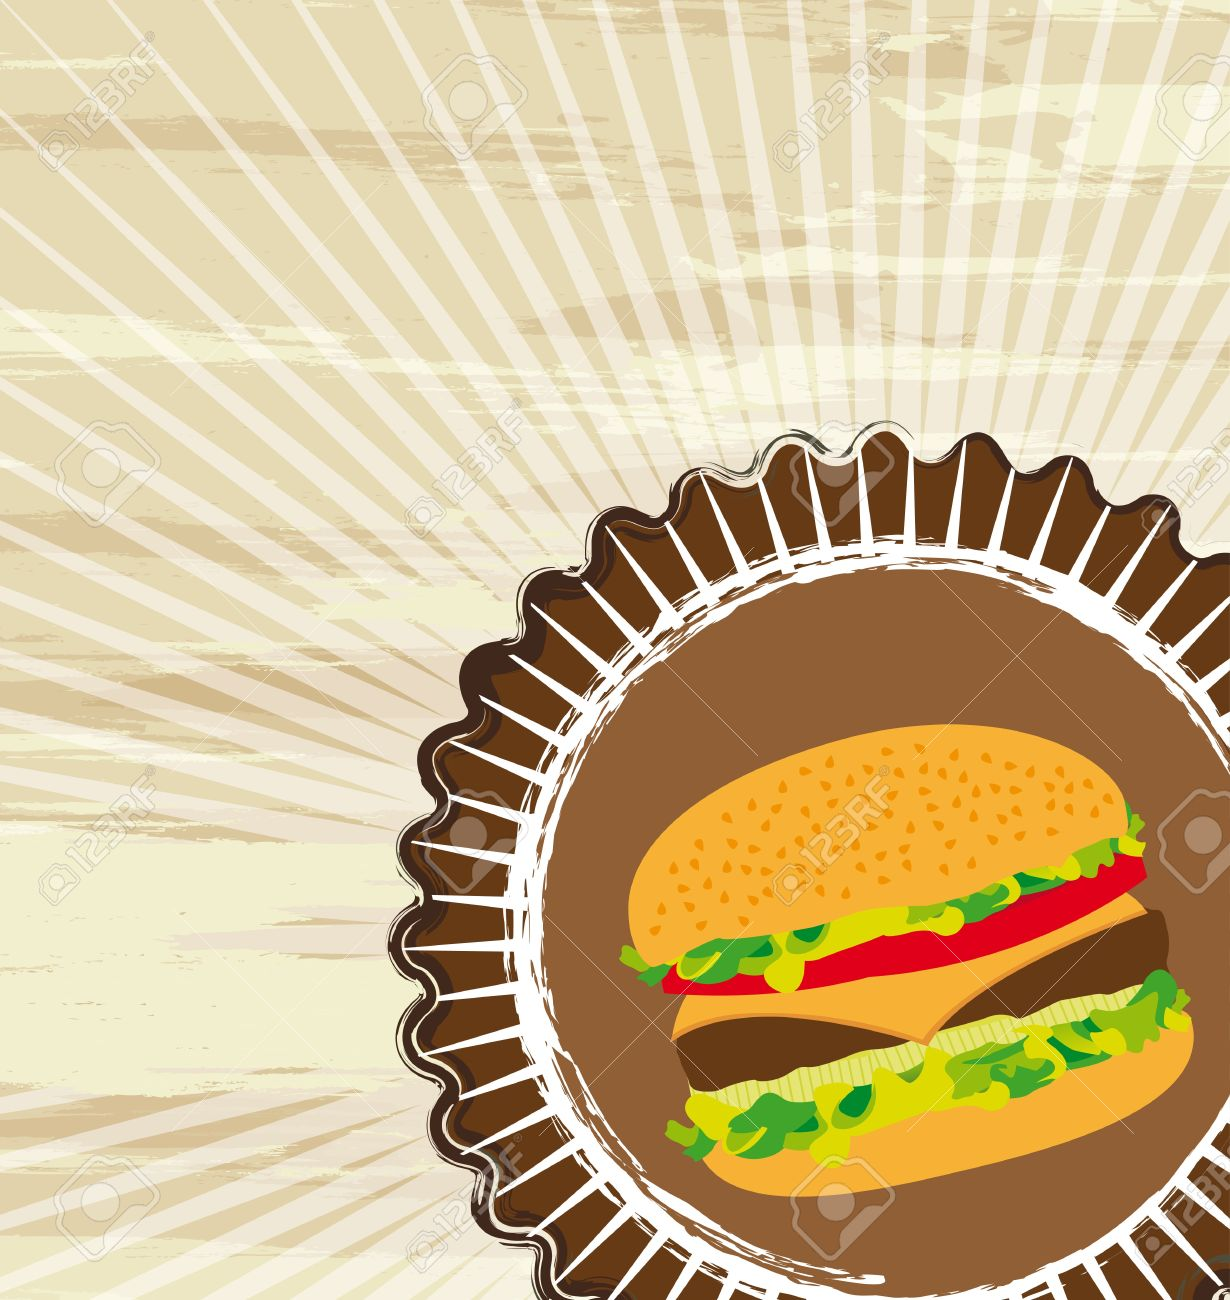 grunge hamburger over brown background, fast food. vector illustration Stock Vector - 13216434